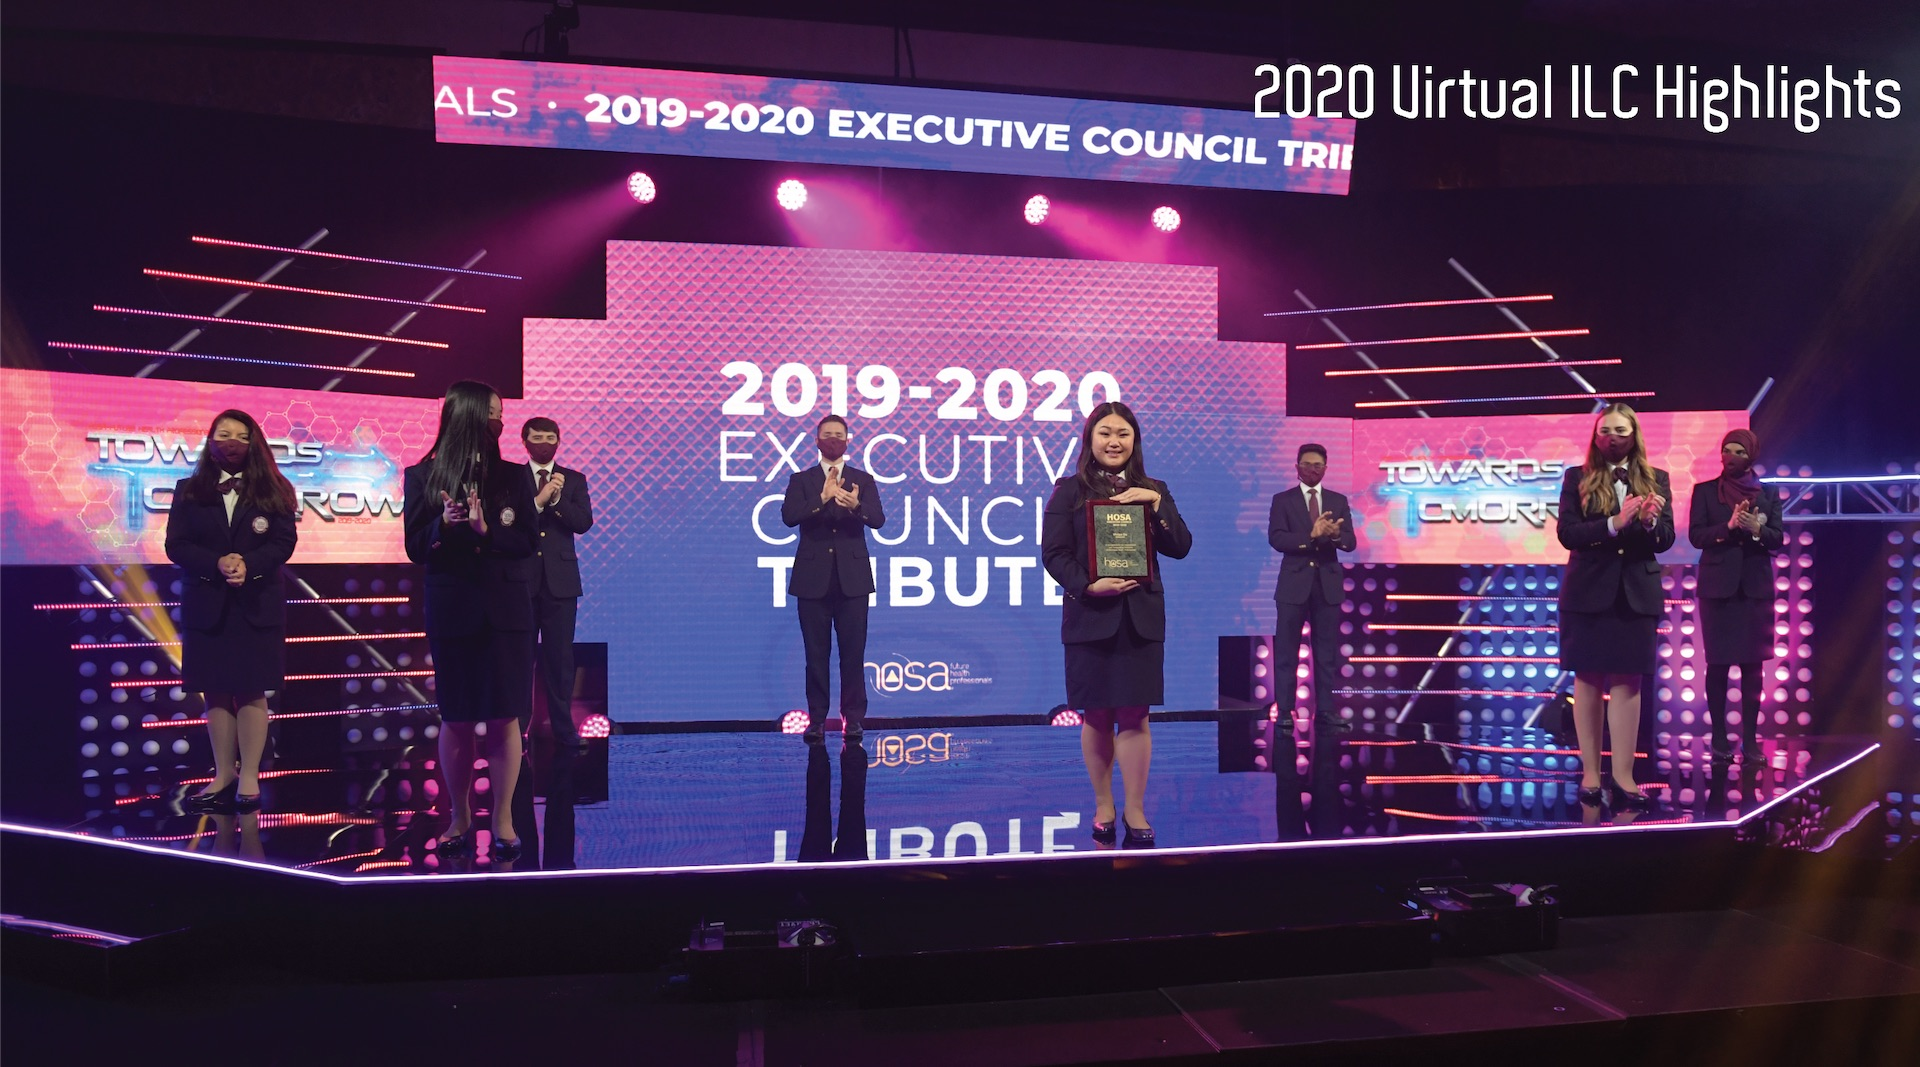 2020 Virtual ILC Conference Highlights